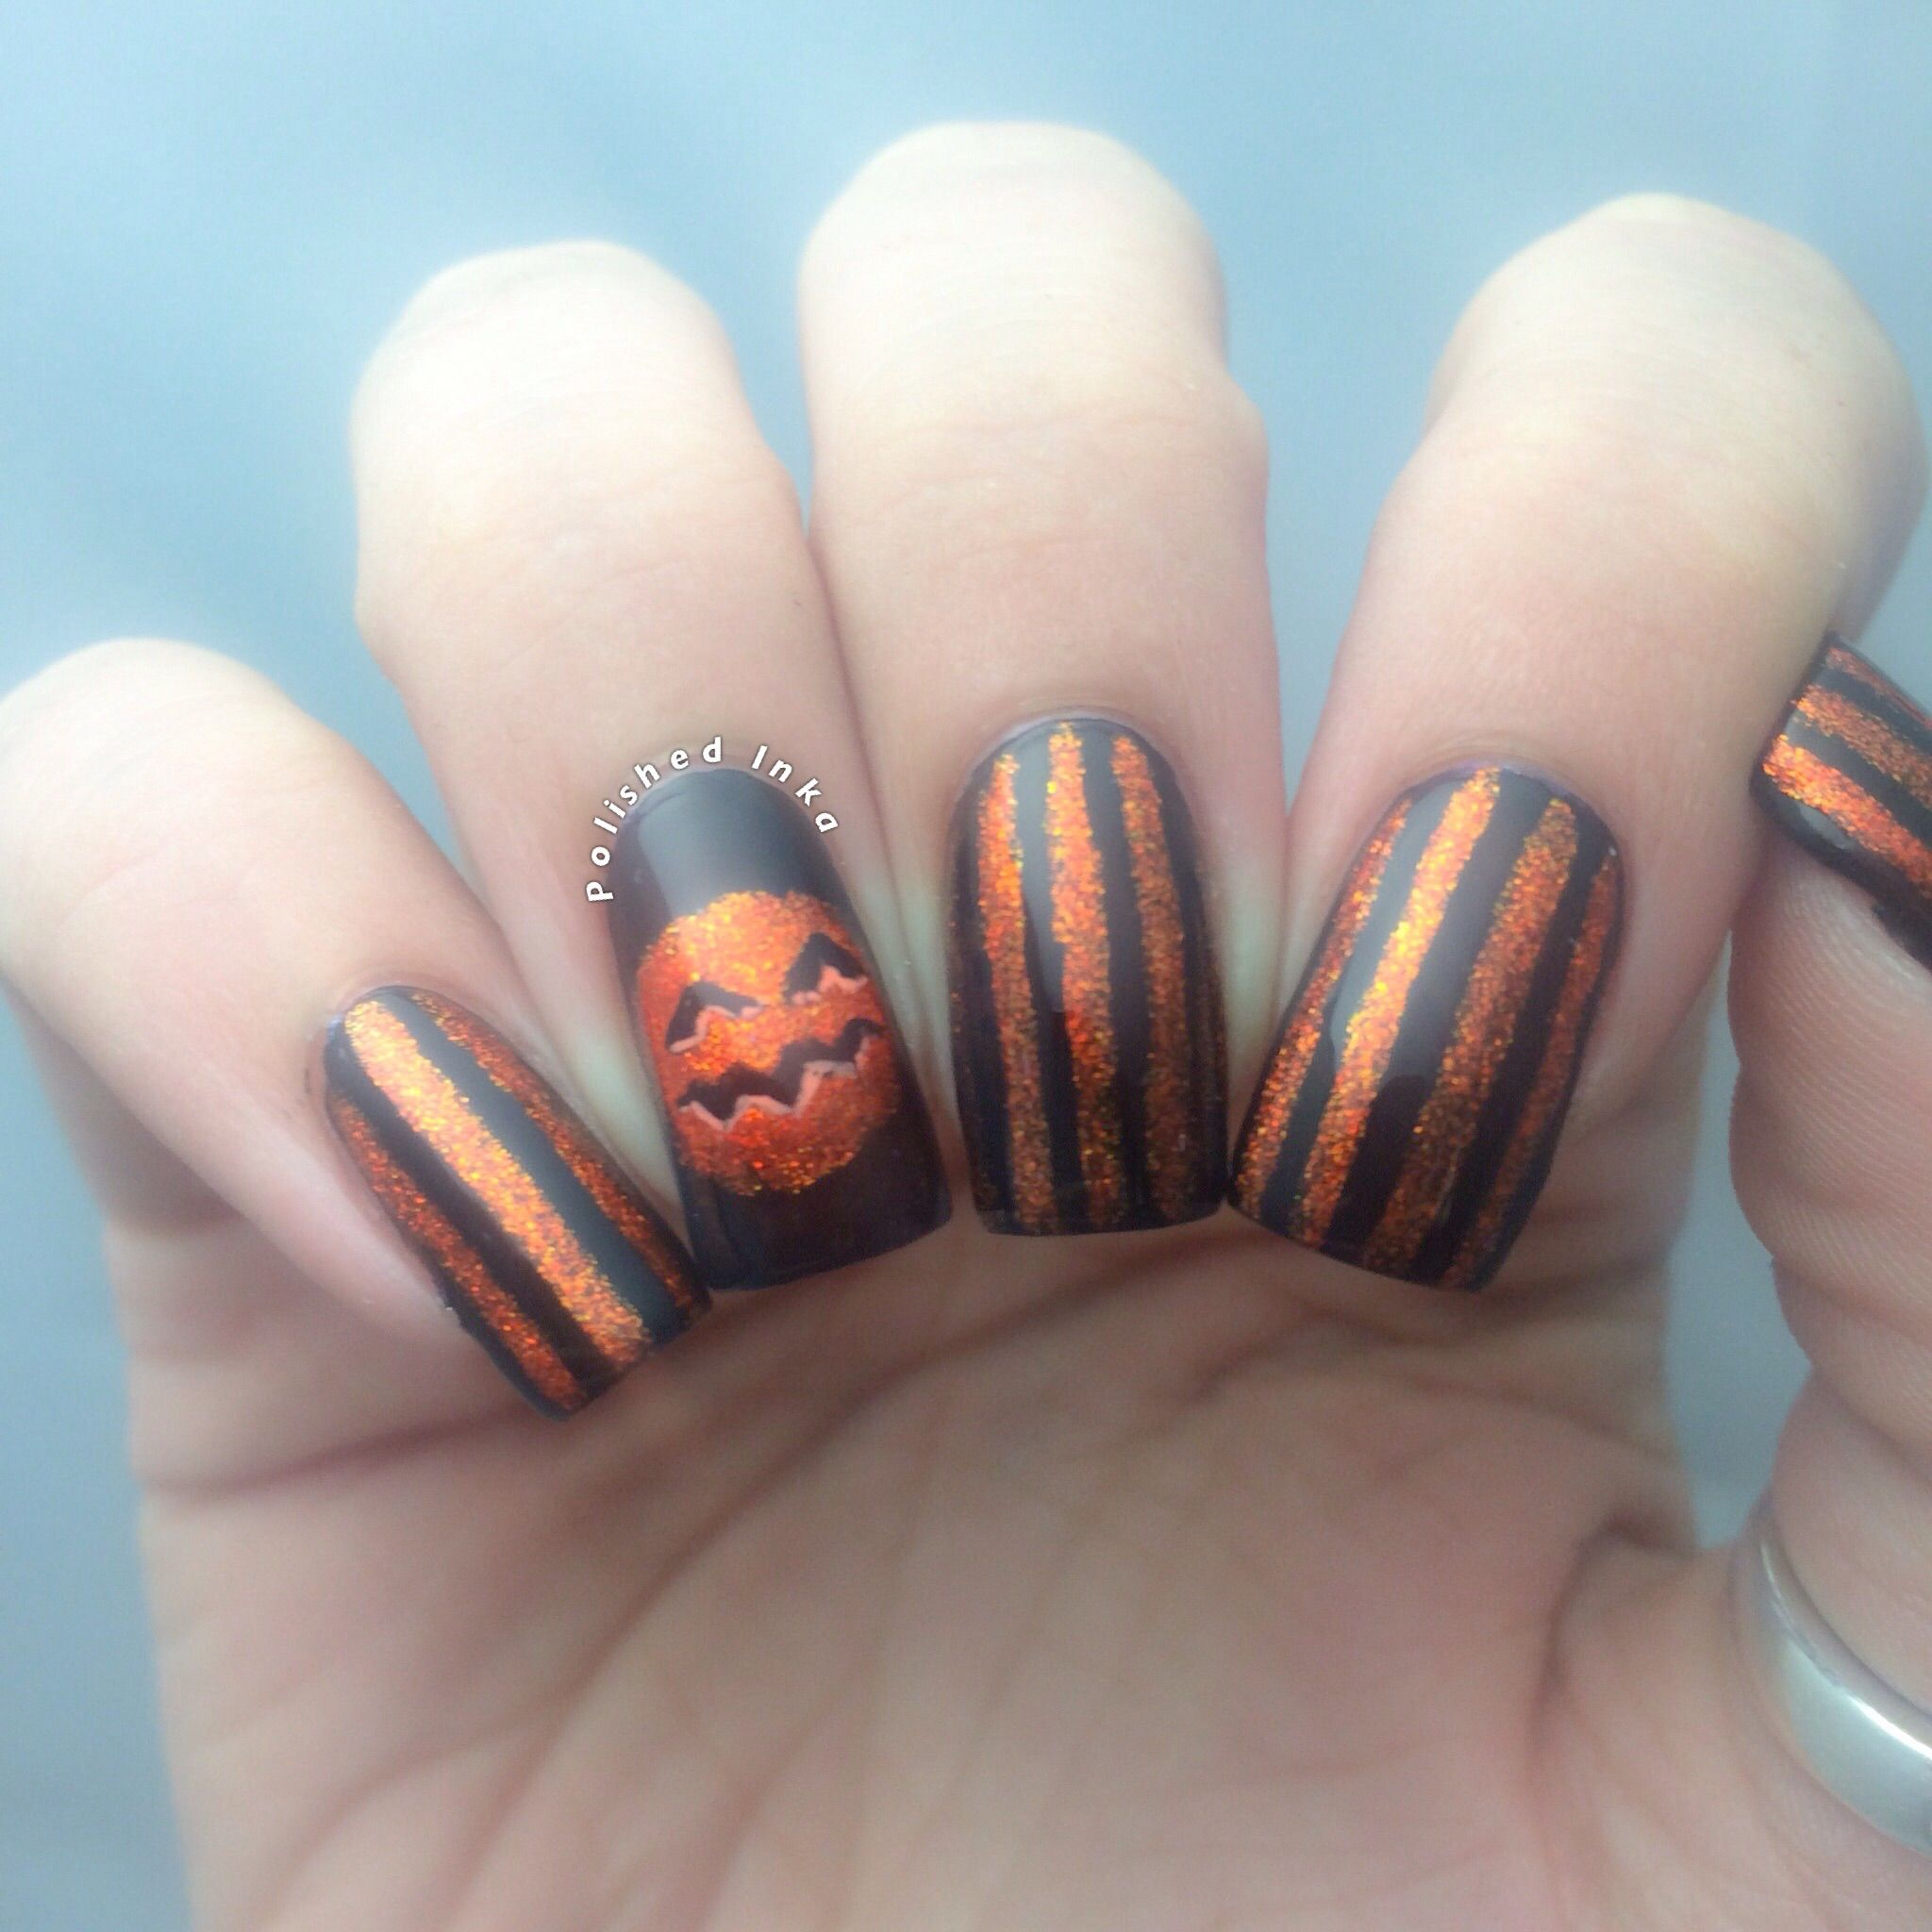 Polished Inka - Sparkly Pumpkin Halloween Nail Art | Hair ...